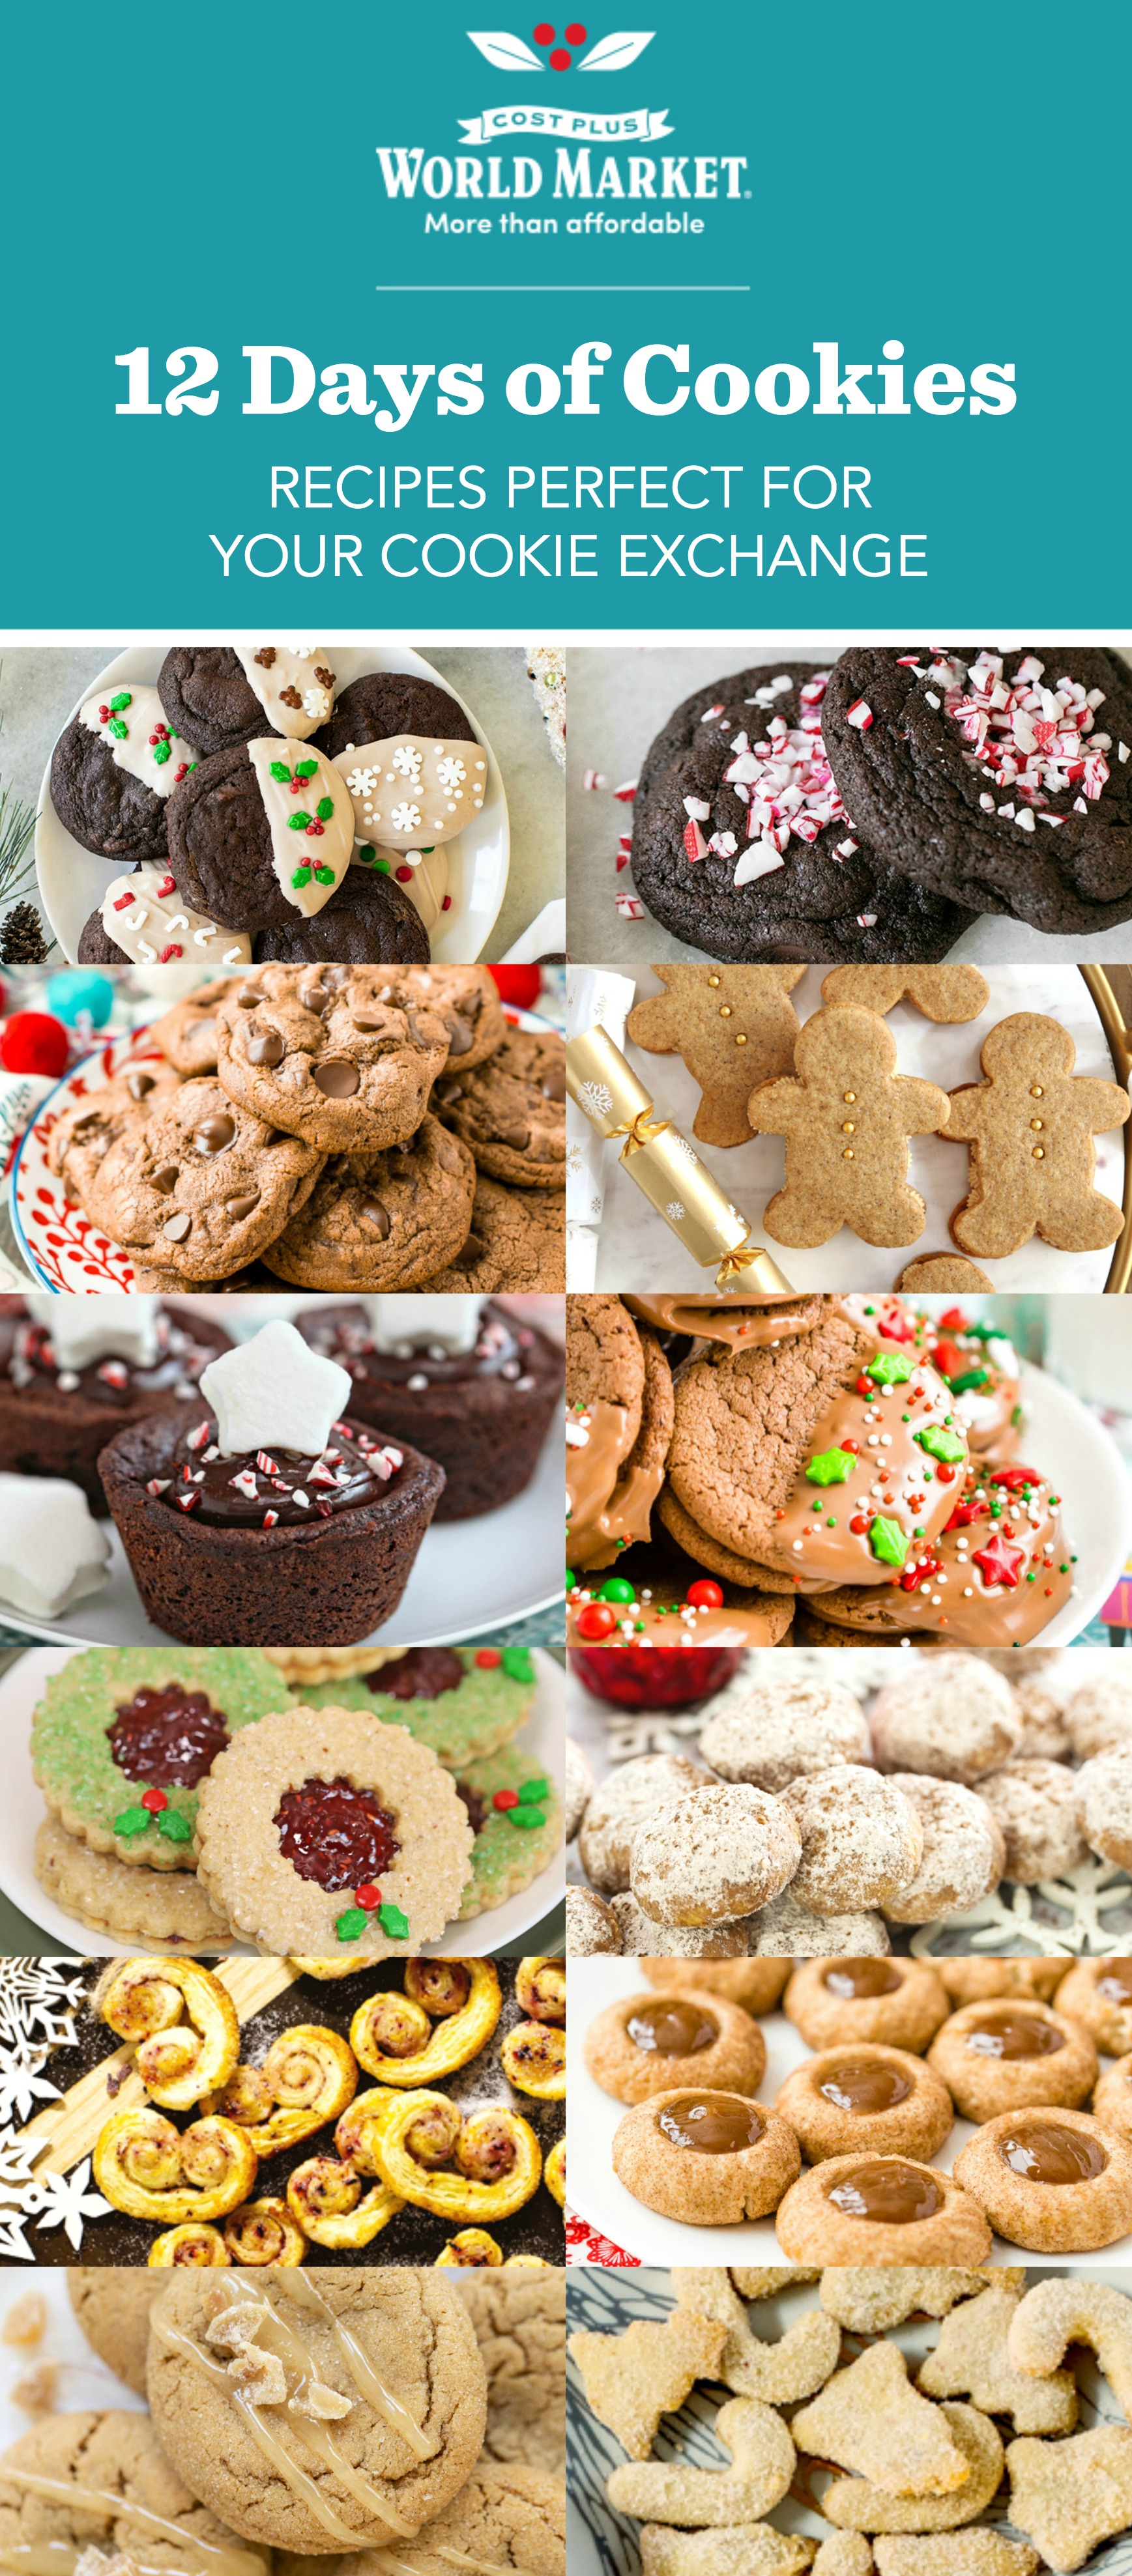 12 Days Of Cookies With World Market Sweet Life